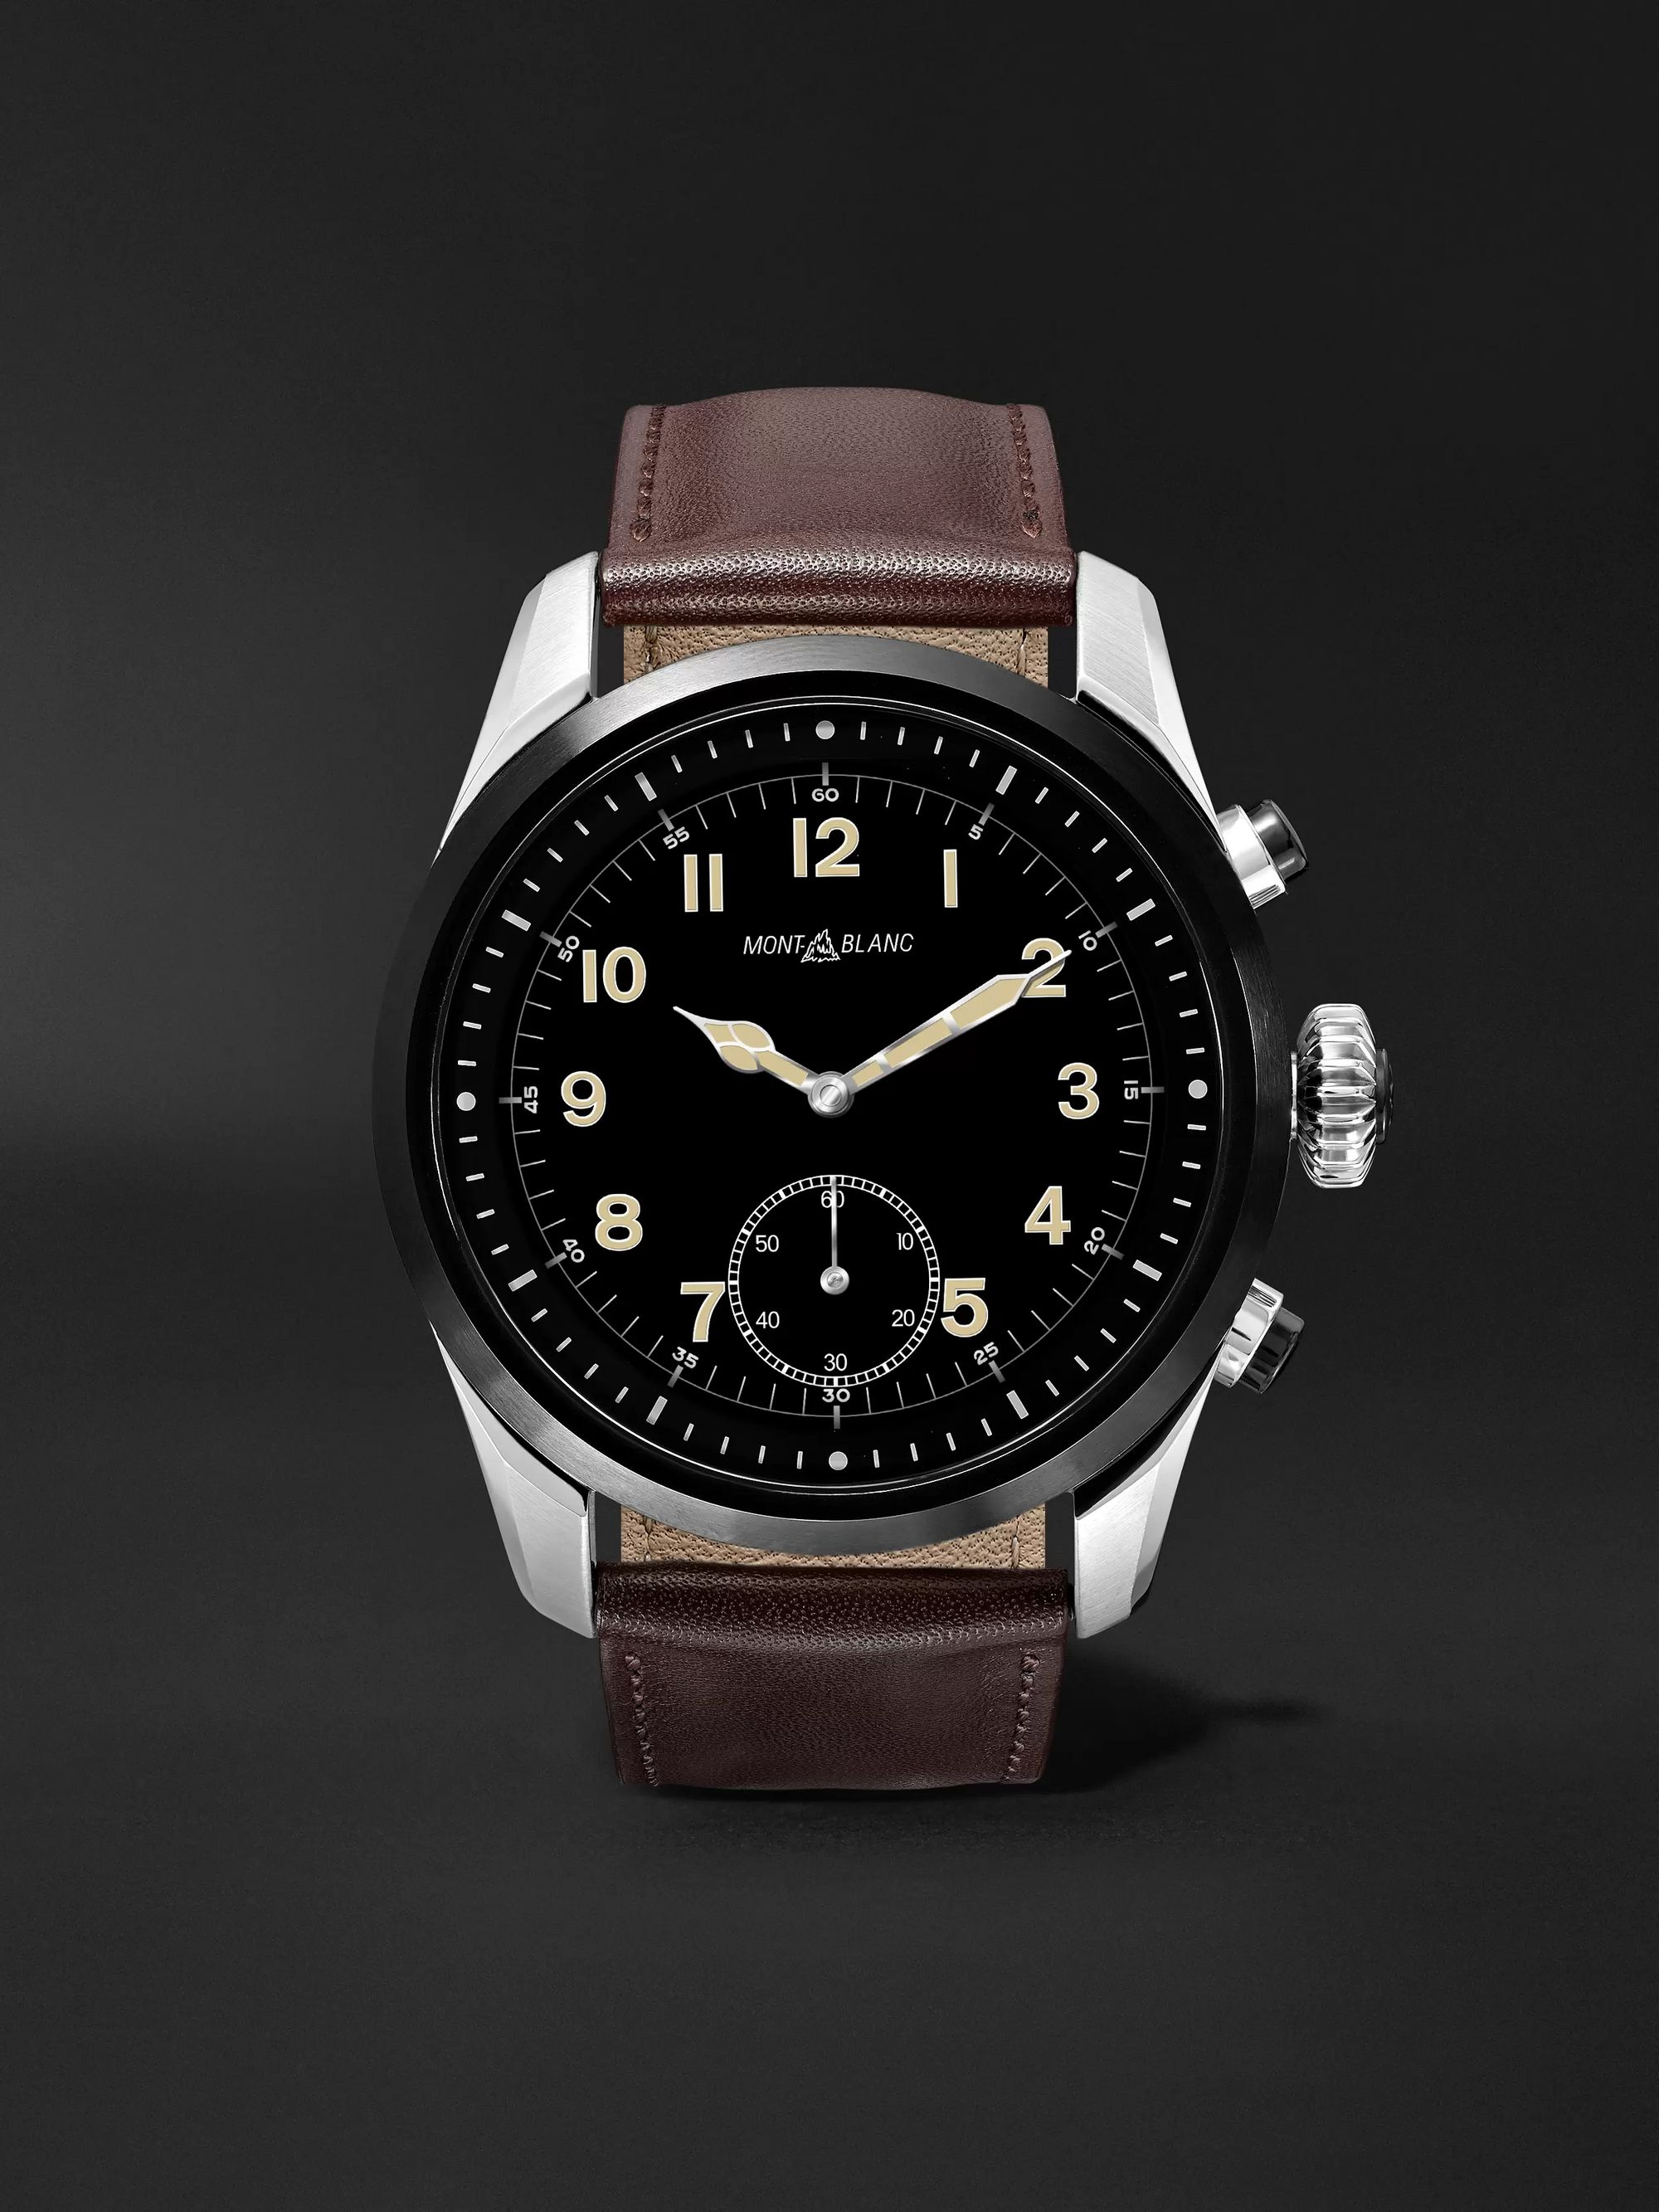 Montblanc Summit 2 42mm Stainless Steel and Leather Smart Watch, Ref. No. 119439